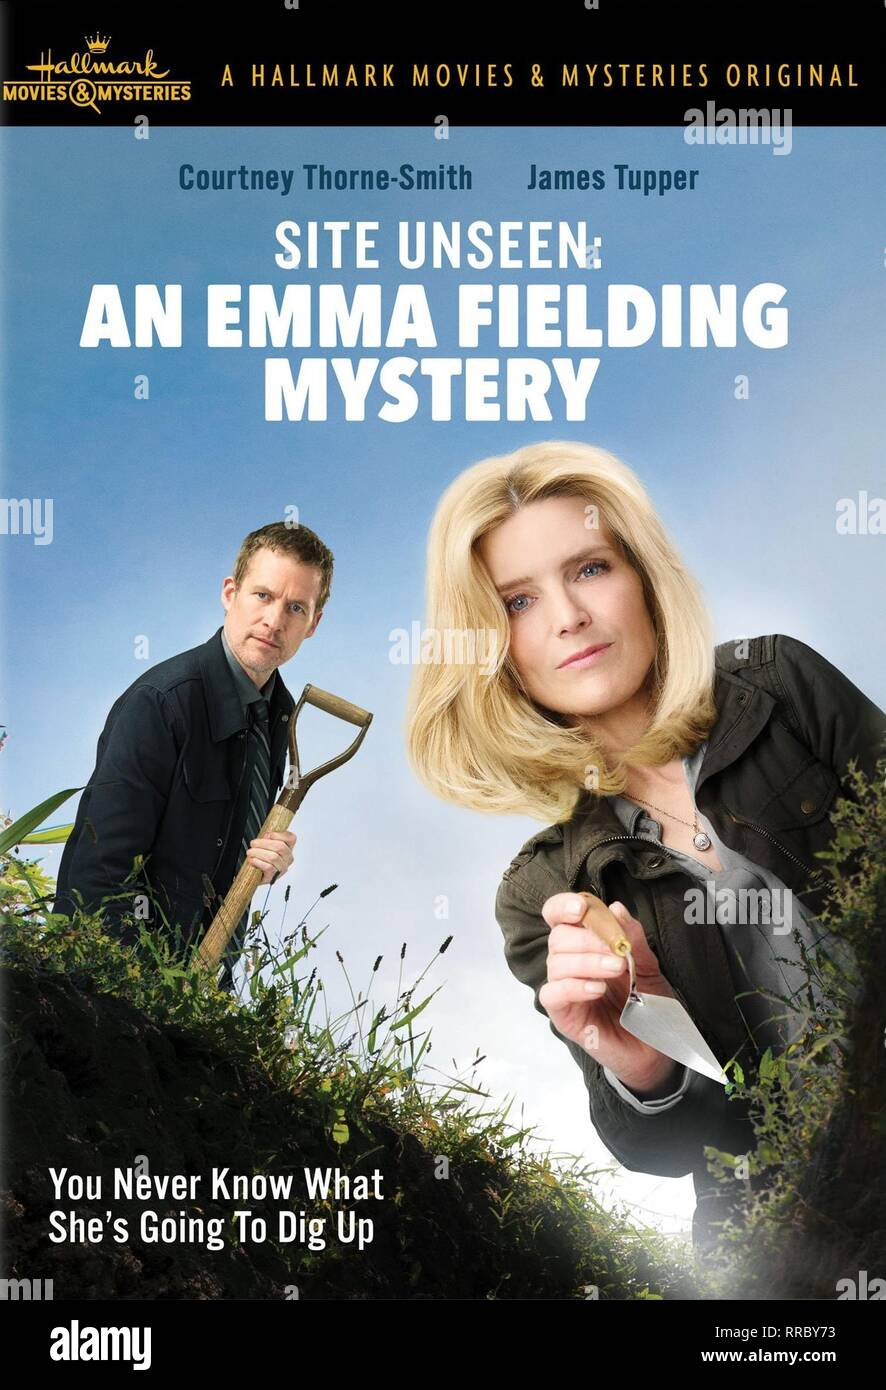 SITE UNSEEN: AN EMMA FIELDING MYSTERY, JAMES TUPPER , COURTNEY THORNE-SMITH, 2017 - Stock Image